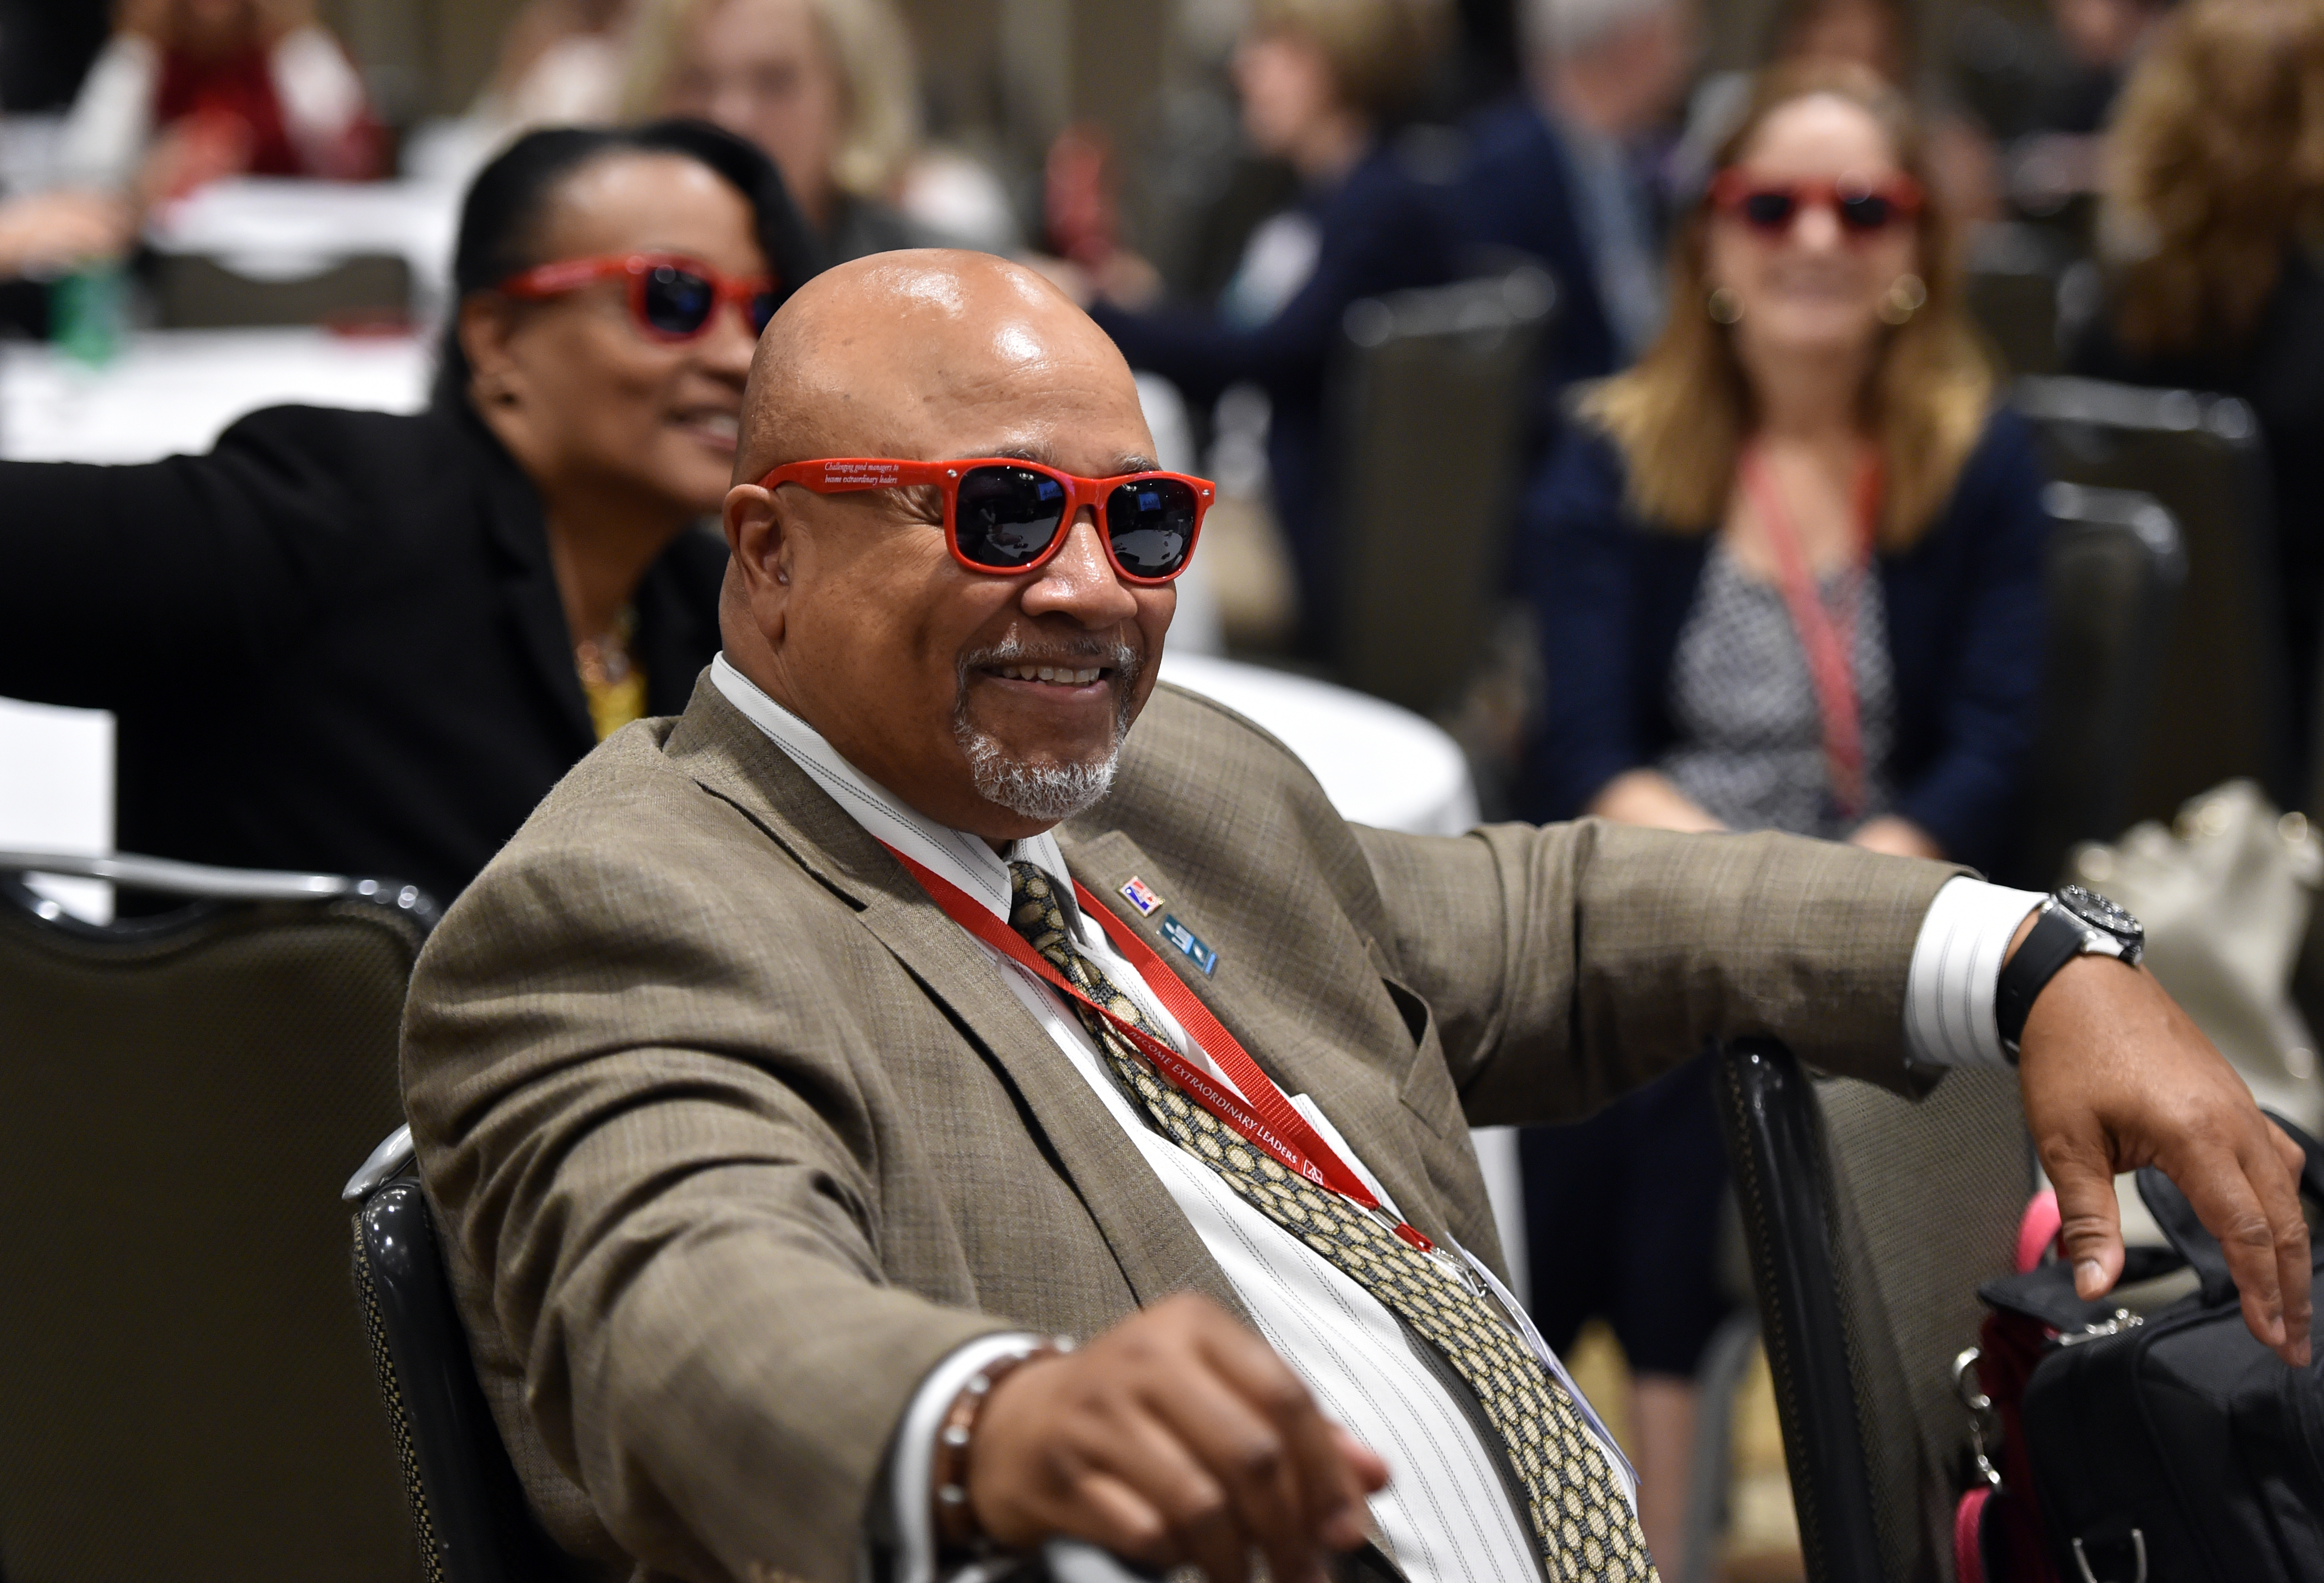 Reg Wells listens to a presentation during the 9th Annual Key Conference